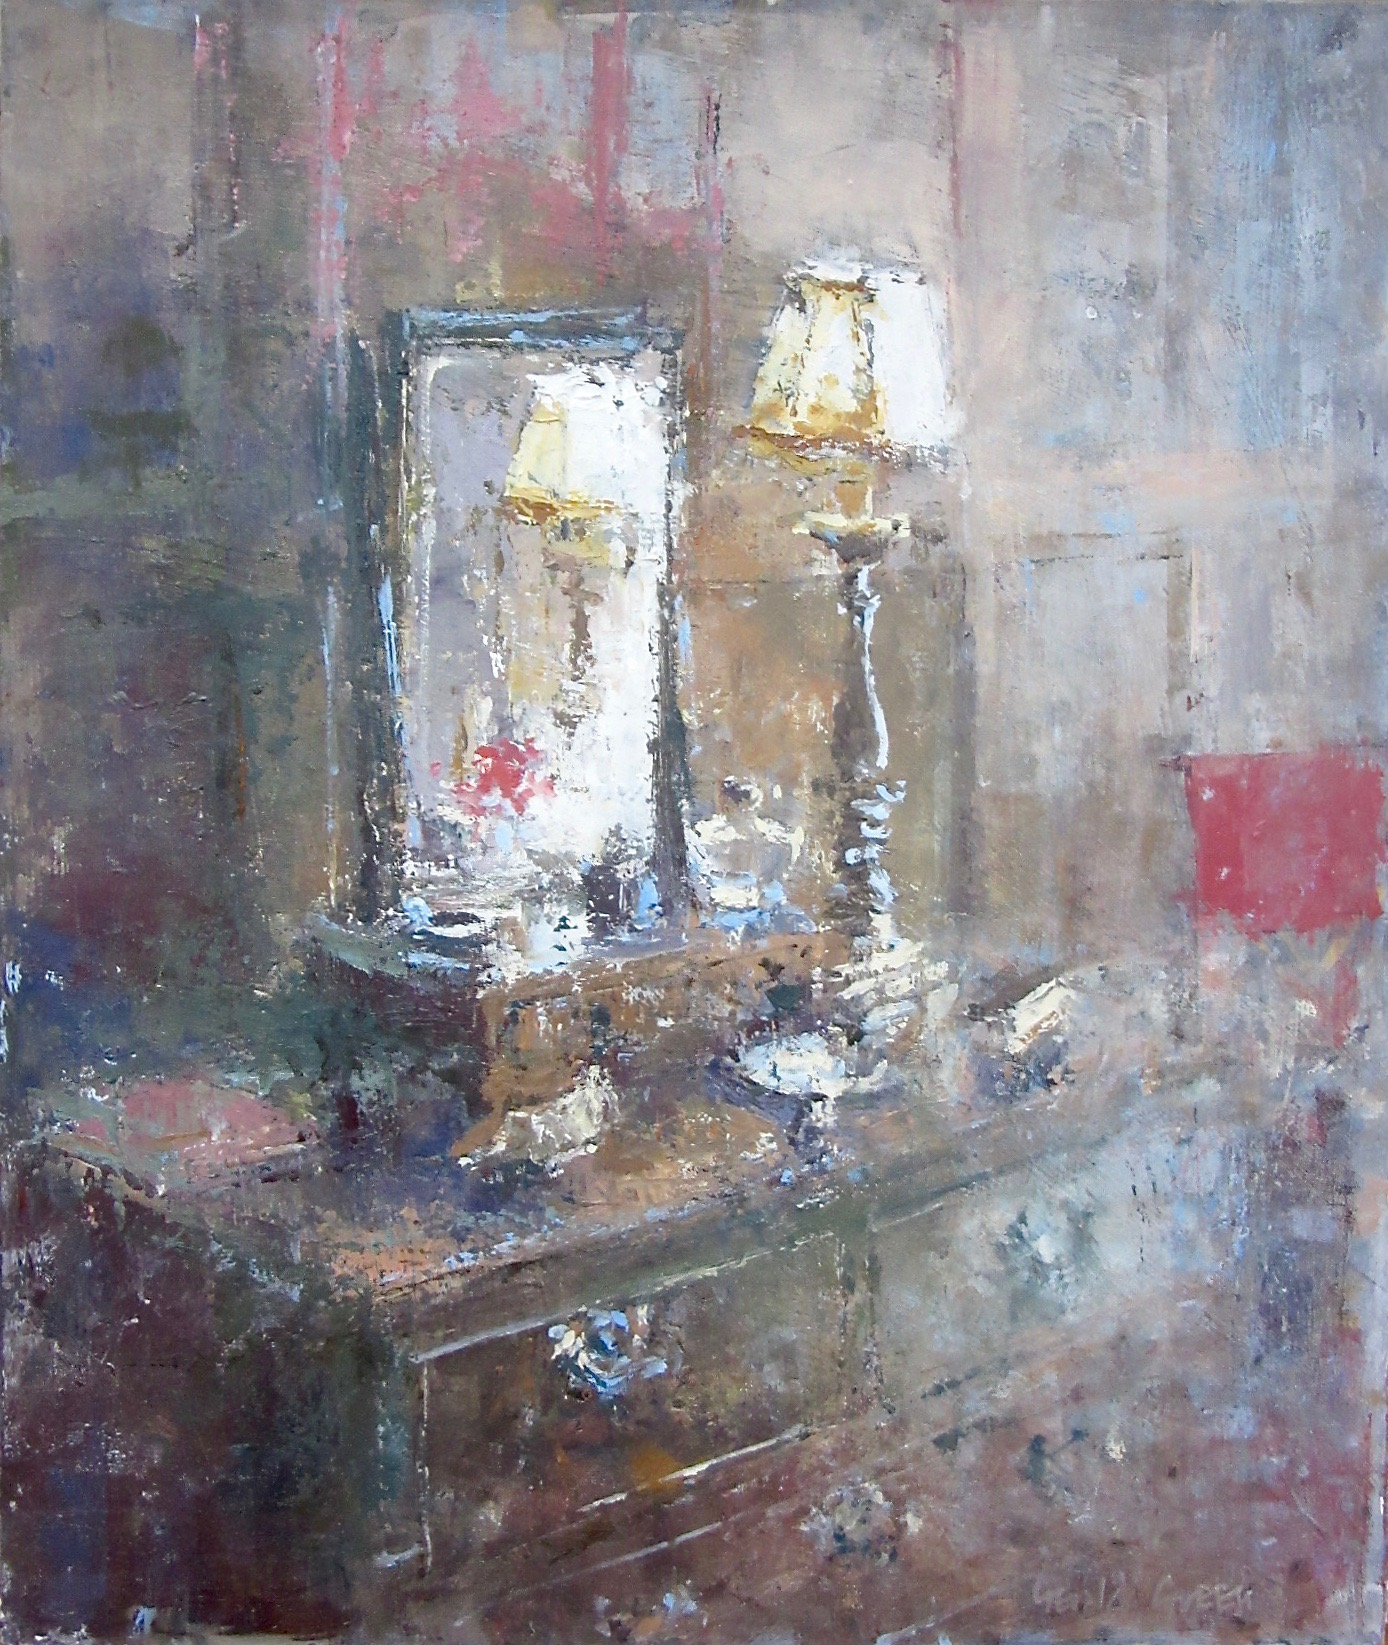 Dressing Table Reflections: 14.25 x 12 in: SOLD